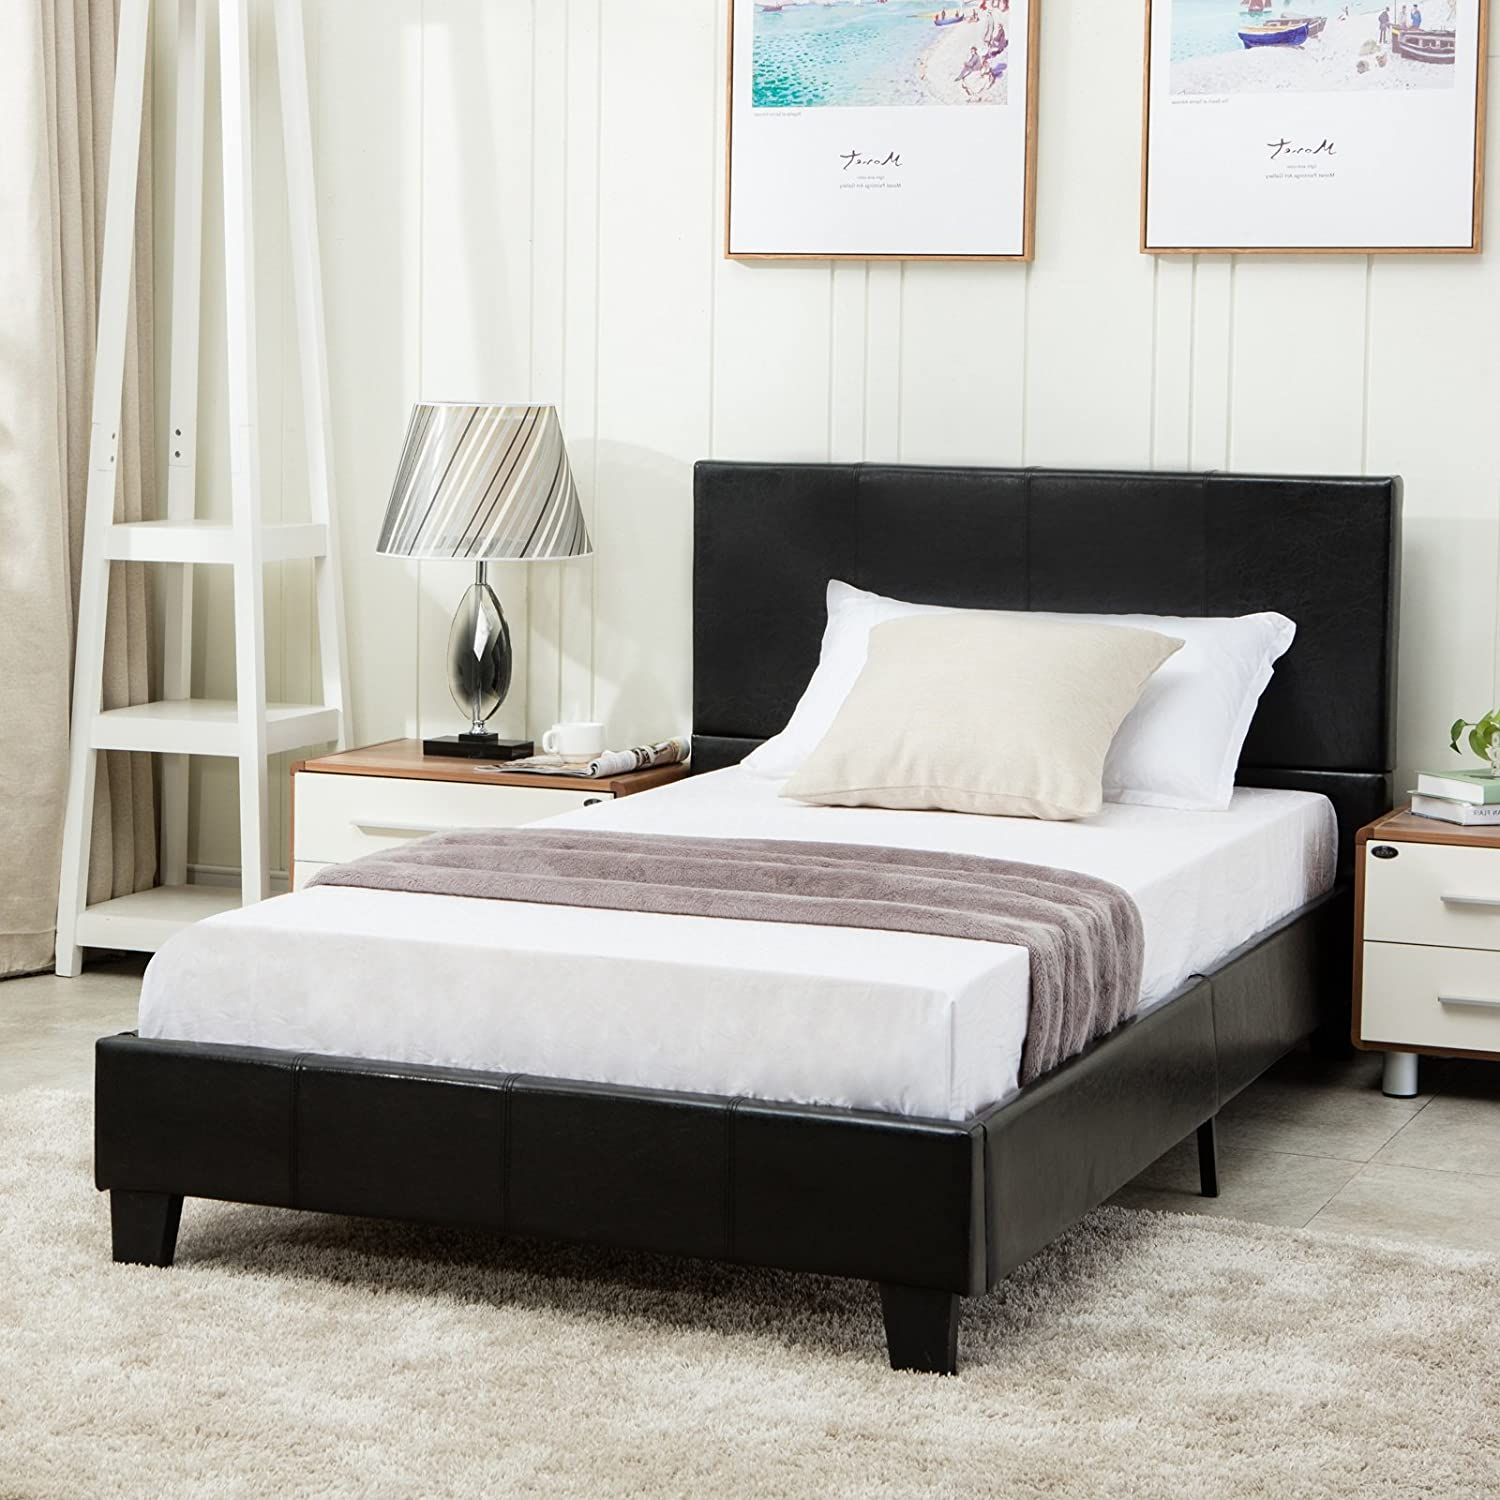 Mecor Faux Leather Bonded Platform Bed Frame Upholstered Panel Bed Full Size,No Box Spring Needed,for Adults Teens Children,Black Full